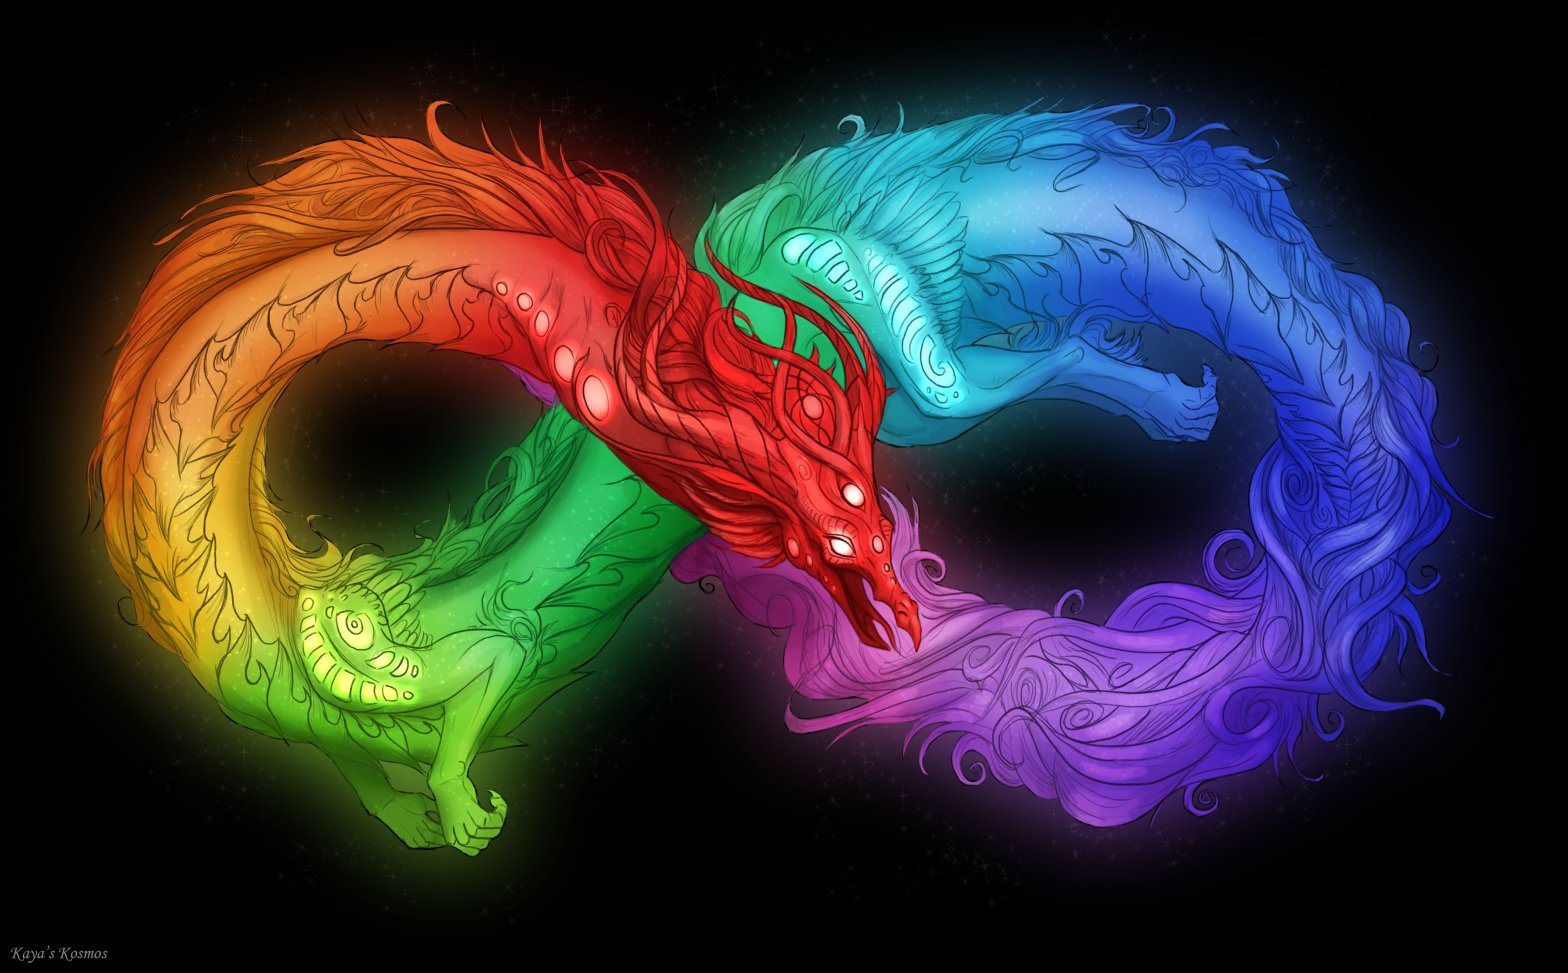 A dragon in the shape of an infinity symbol that is rainbow coloured like the neurodiversity symbol